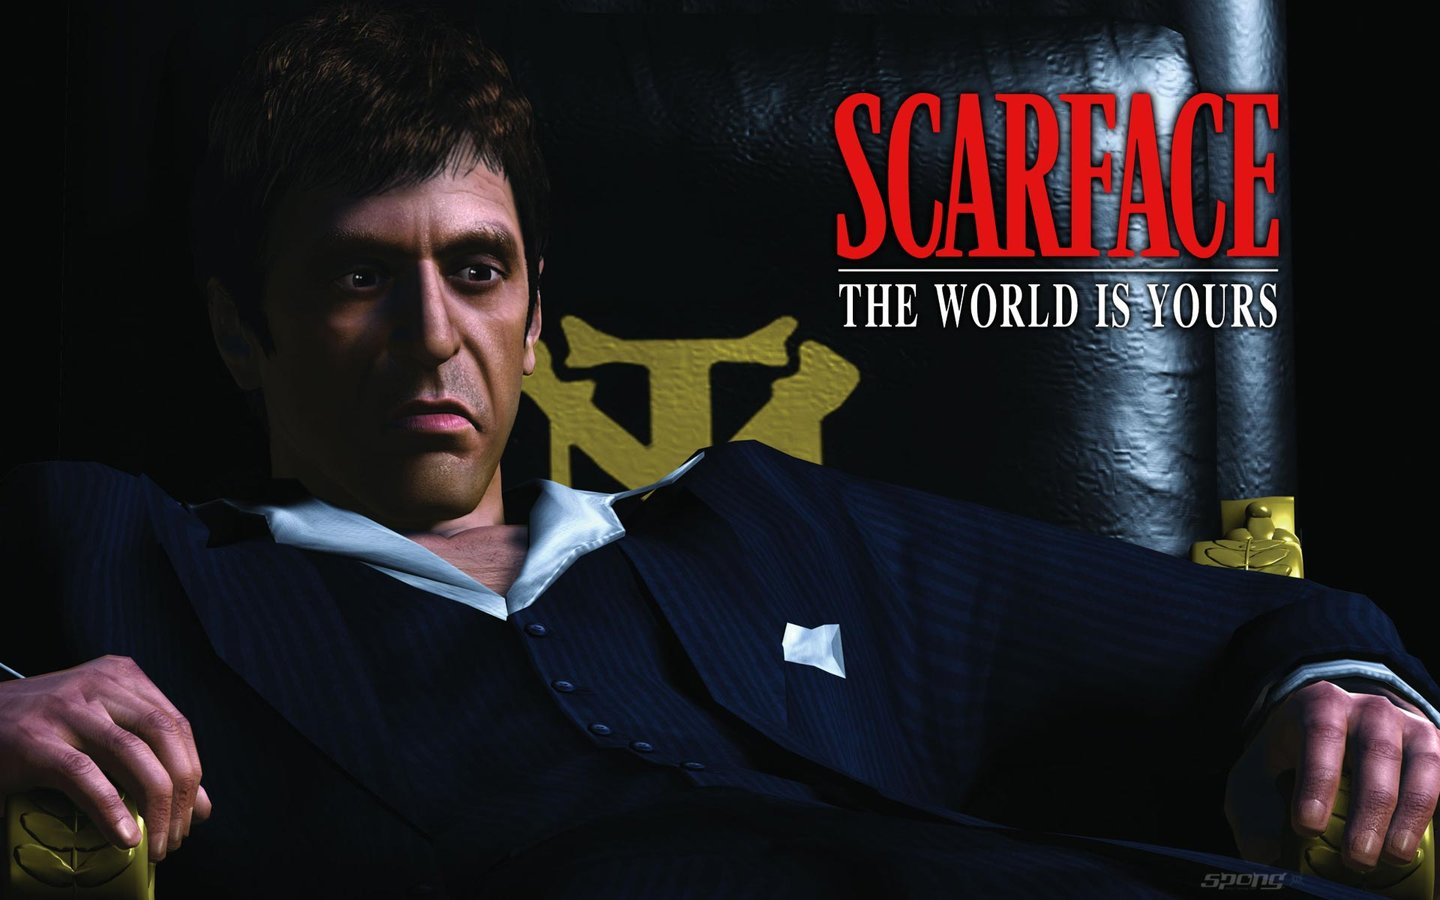 Scarface: The World is Yours - PC Wallpaper